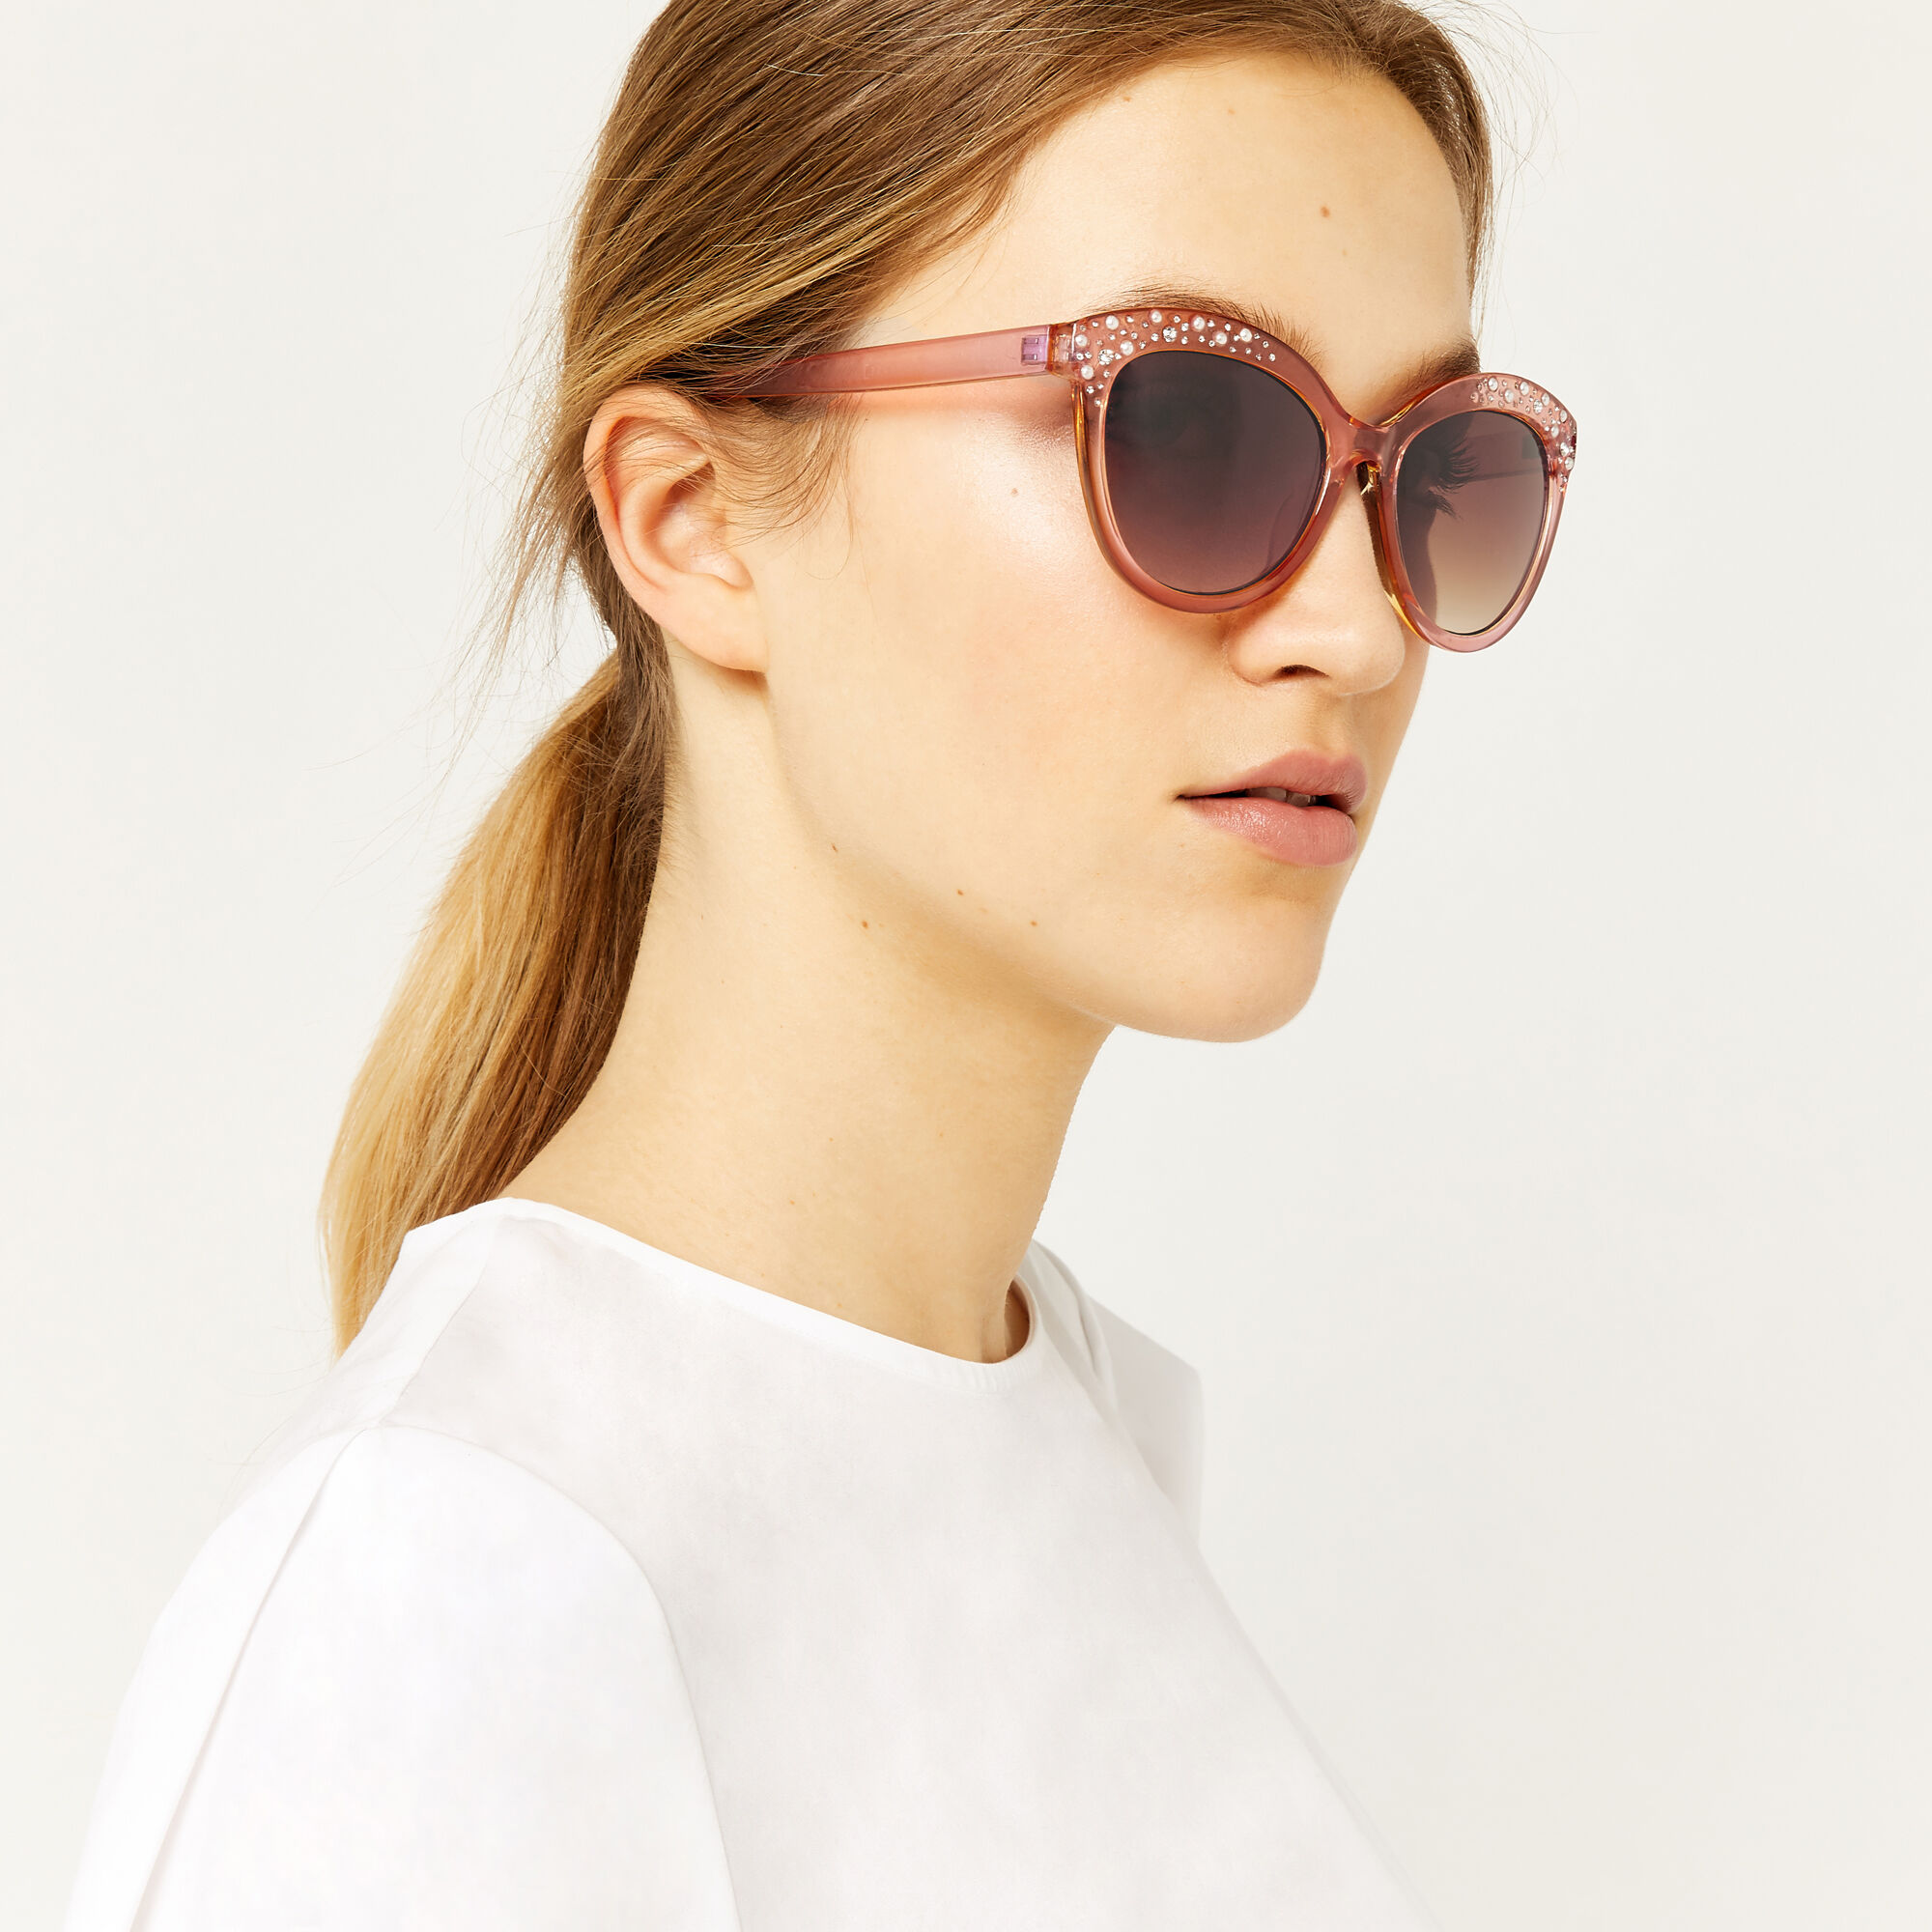 Warehouse, EMBELLISHED SUNGLASSES Light Pink 1